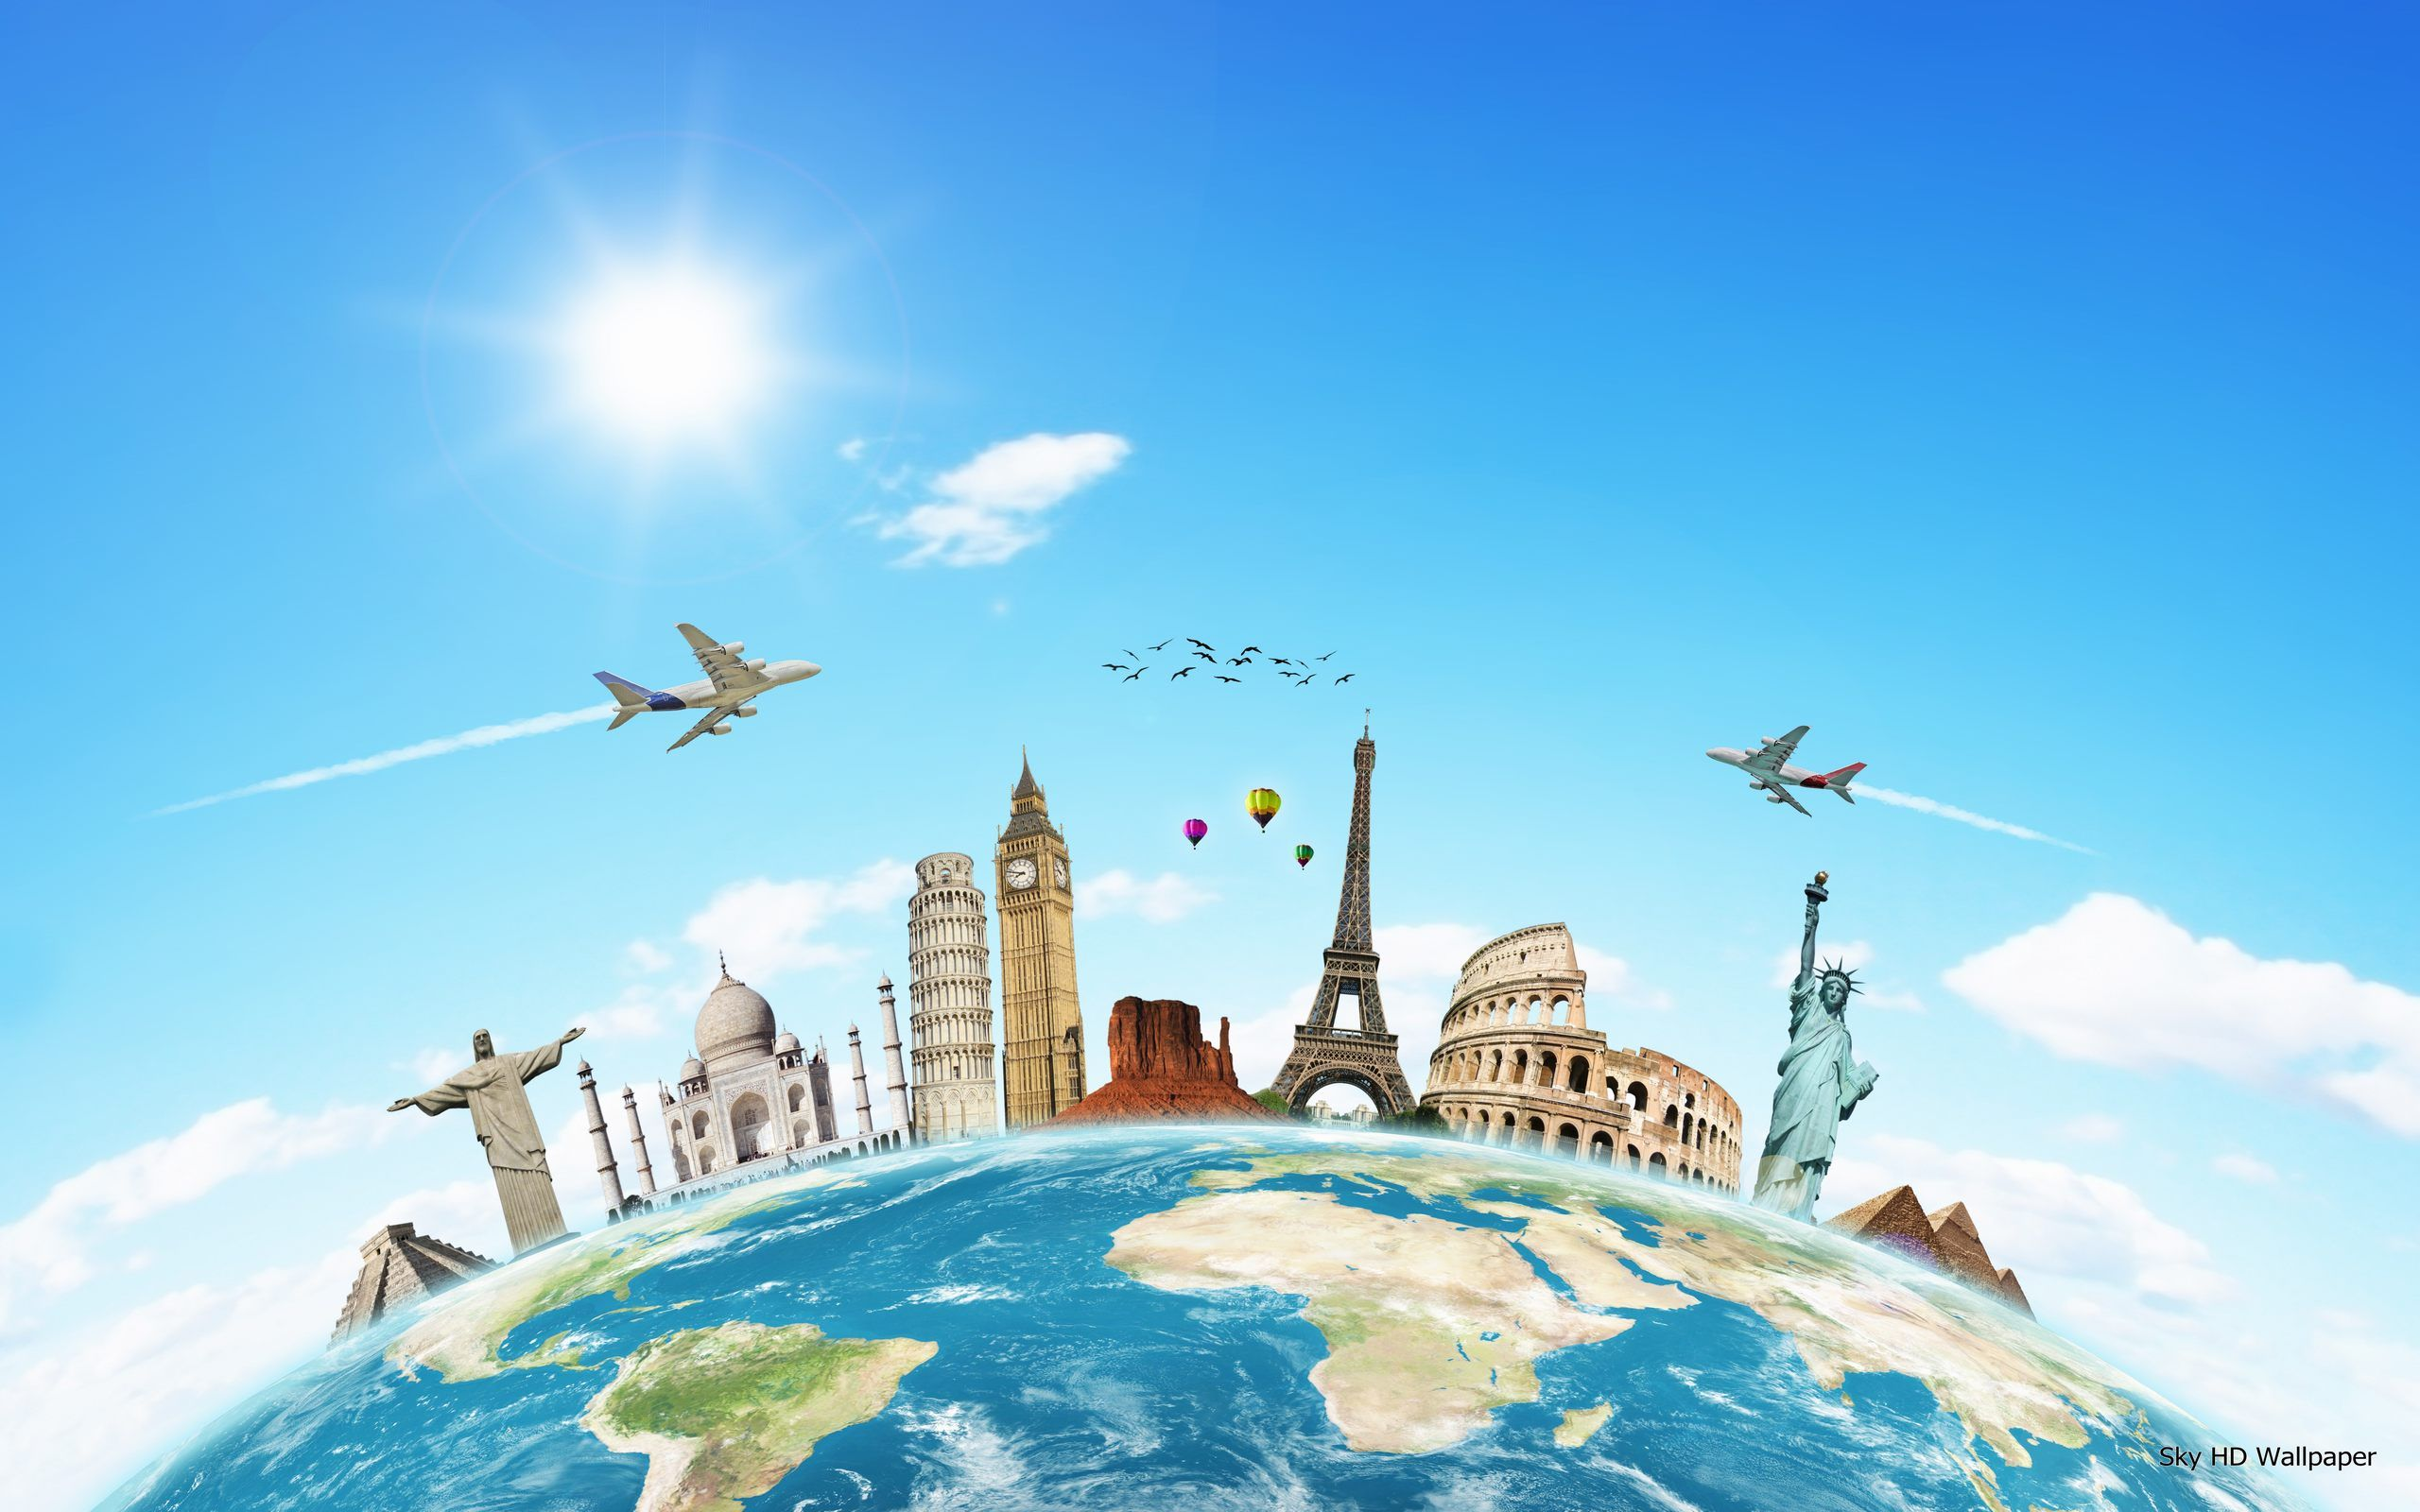 Travel Agency Wallpapers Top Free Travel Agency Backgrounds Wallpaperaccess